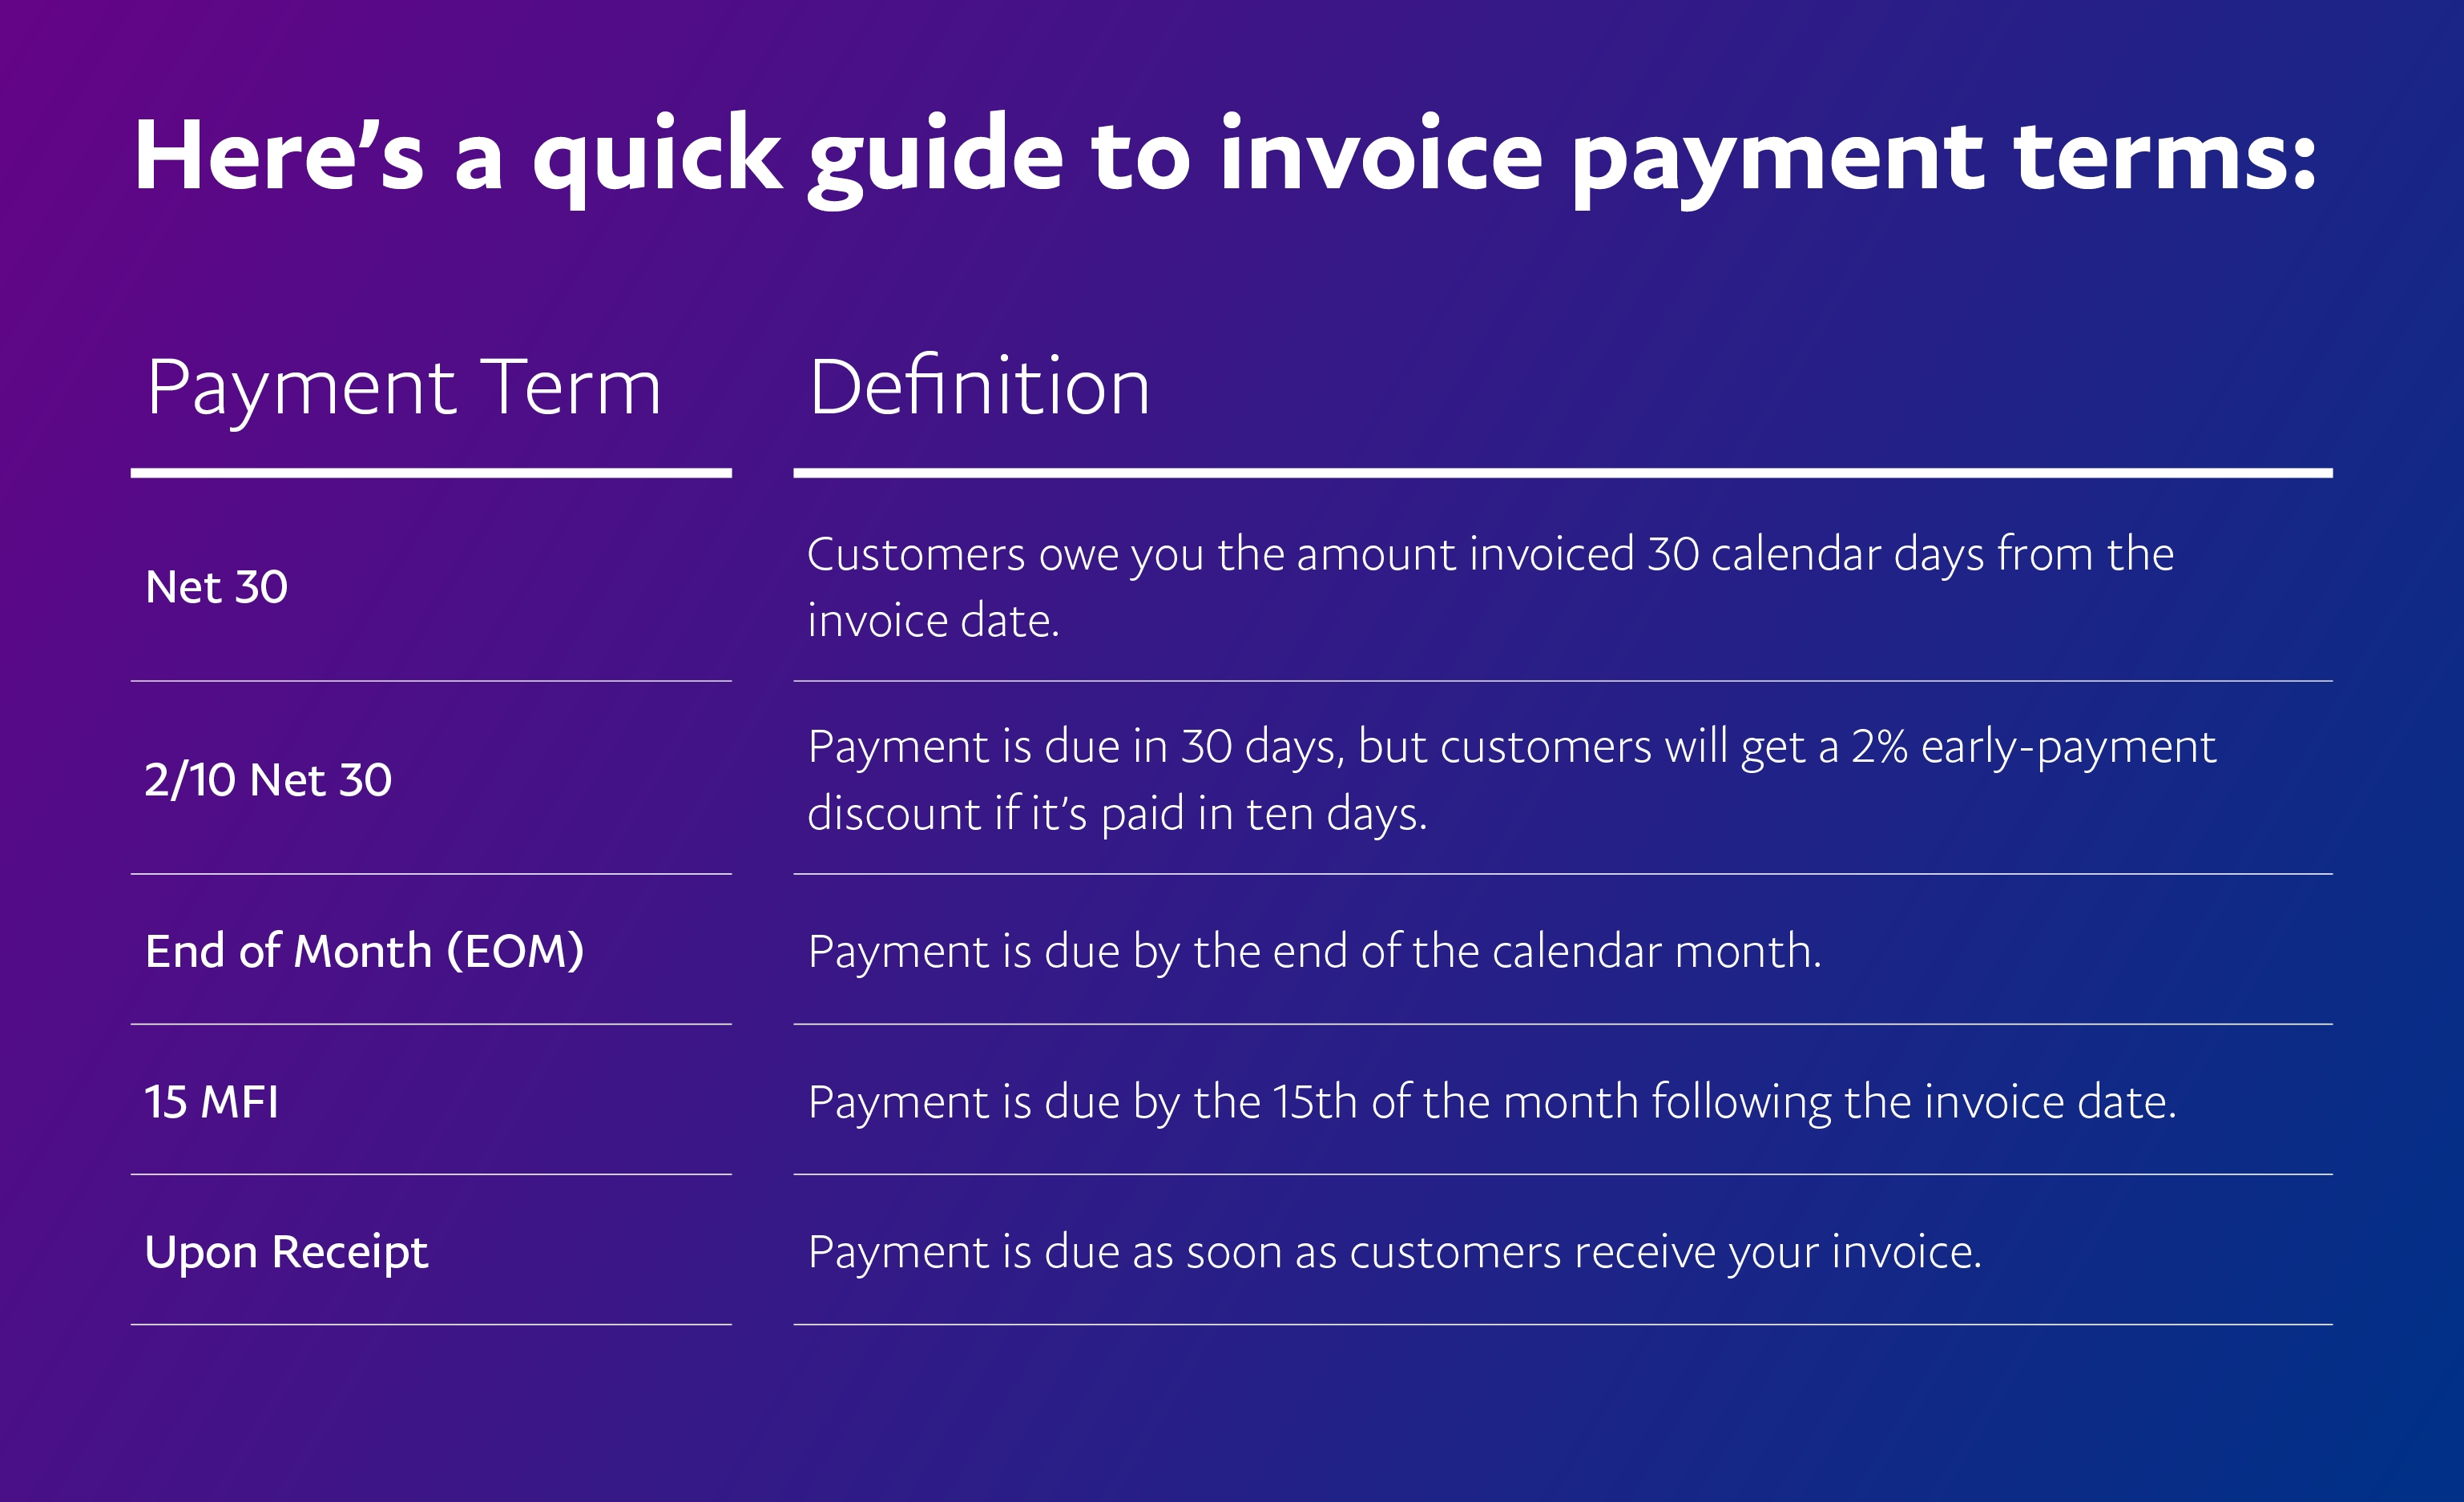 5 popular invoice payment terms paypal late payment terms on invoice example